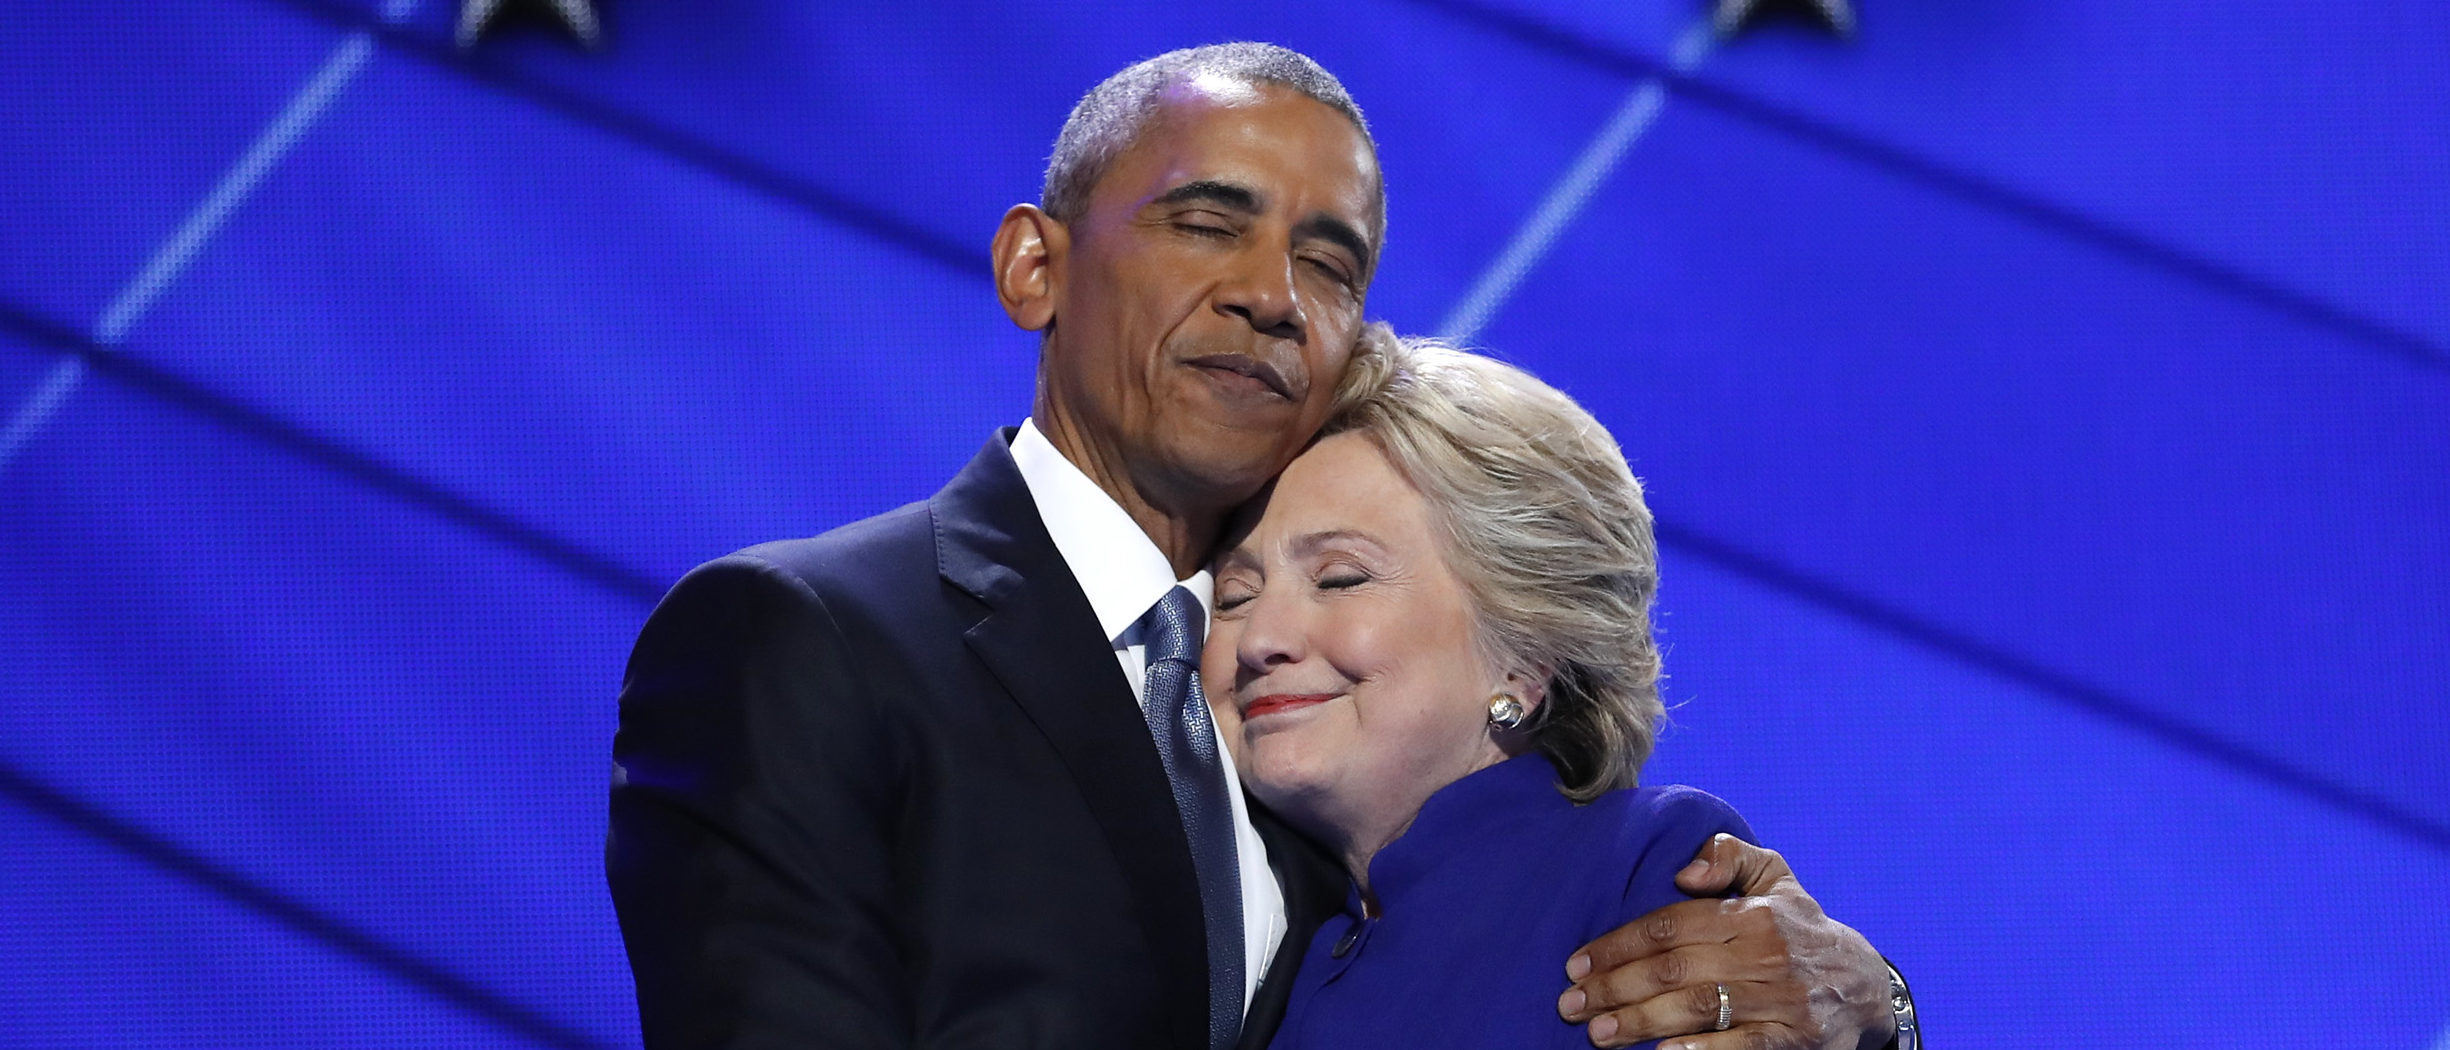 Democratic presidential nominee Hillary Clinton hugs U.S. President Barack Obama as she arrives onstage at the end of his speech on the third night of the 2016 Democratic National Convention in Philadelphia, Pennsylvania, U.S., July 27, 2016. REUTERS/Jim Young TPX IMAGES OF THE DAY - HT1EC7S0FJSV9